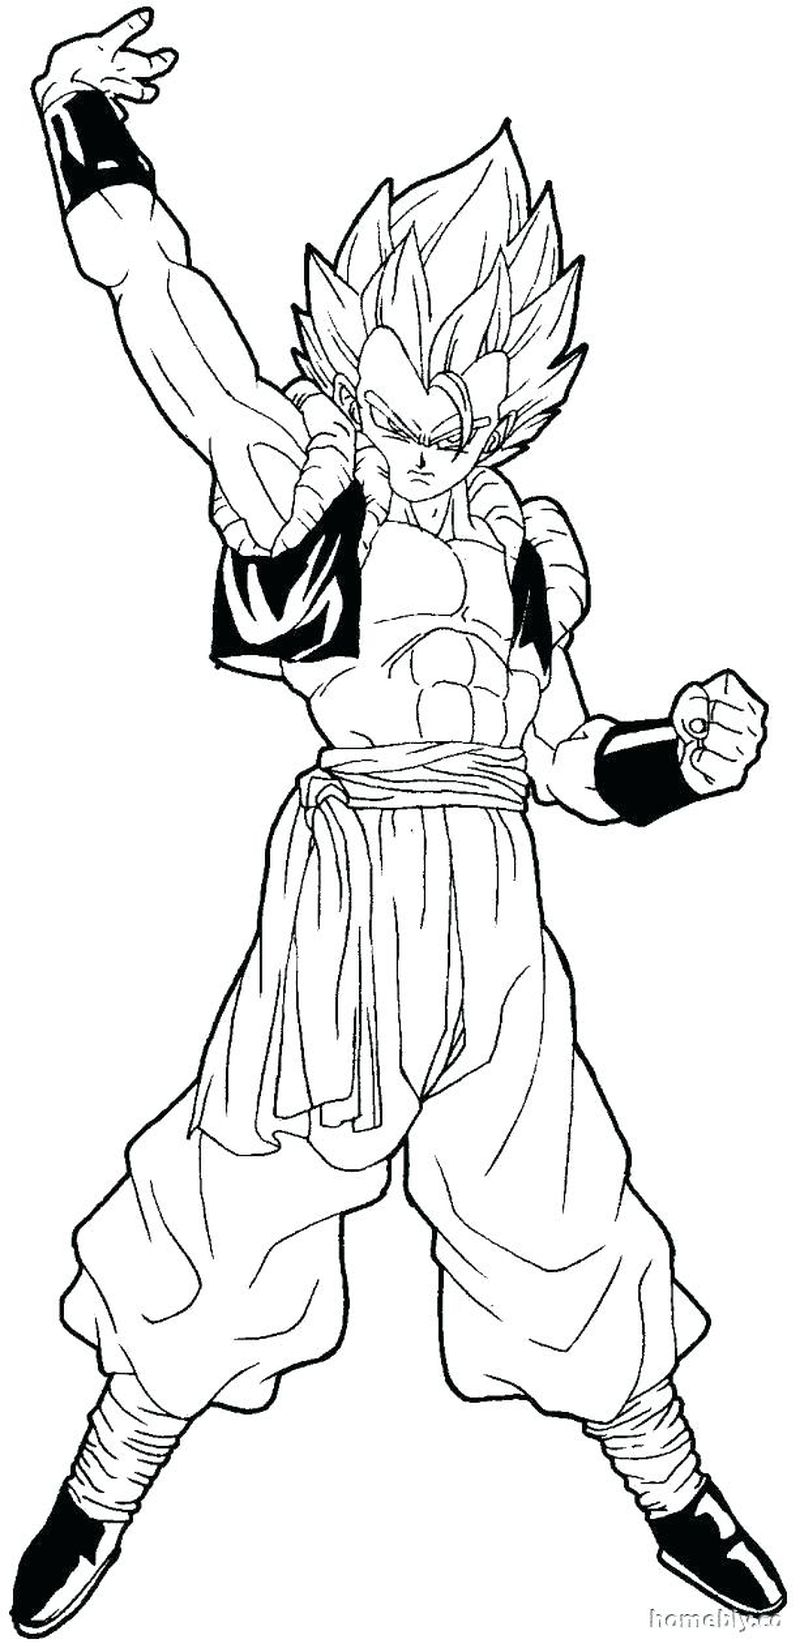 dragon ball z coloring pictures Printable